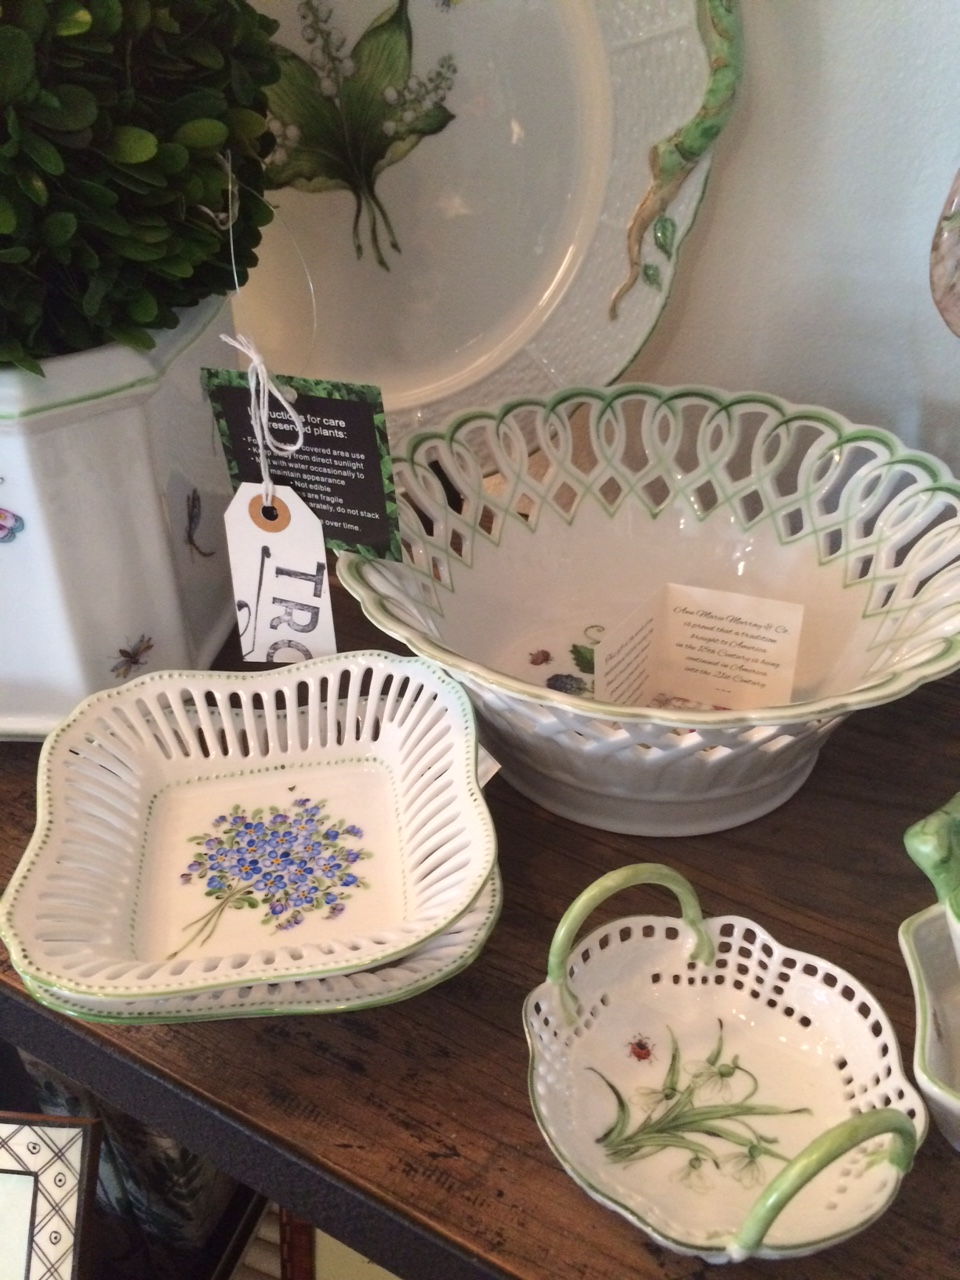 Ann Murray hand painted porcelain plates and cache pots are so tasteful, delicate and lovely. If those are words you'd use to describe your mother, she's sure to love these pieces.